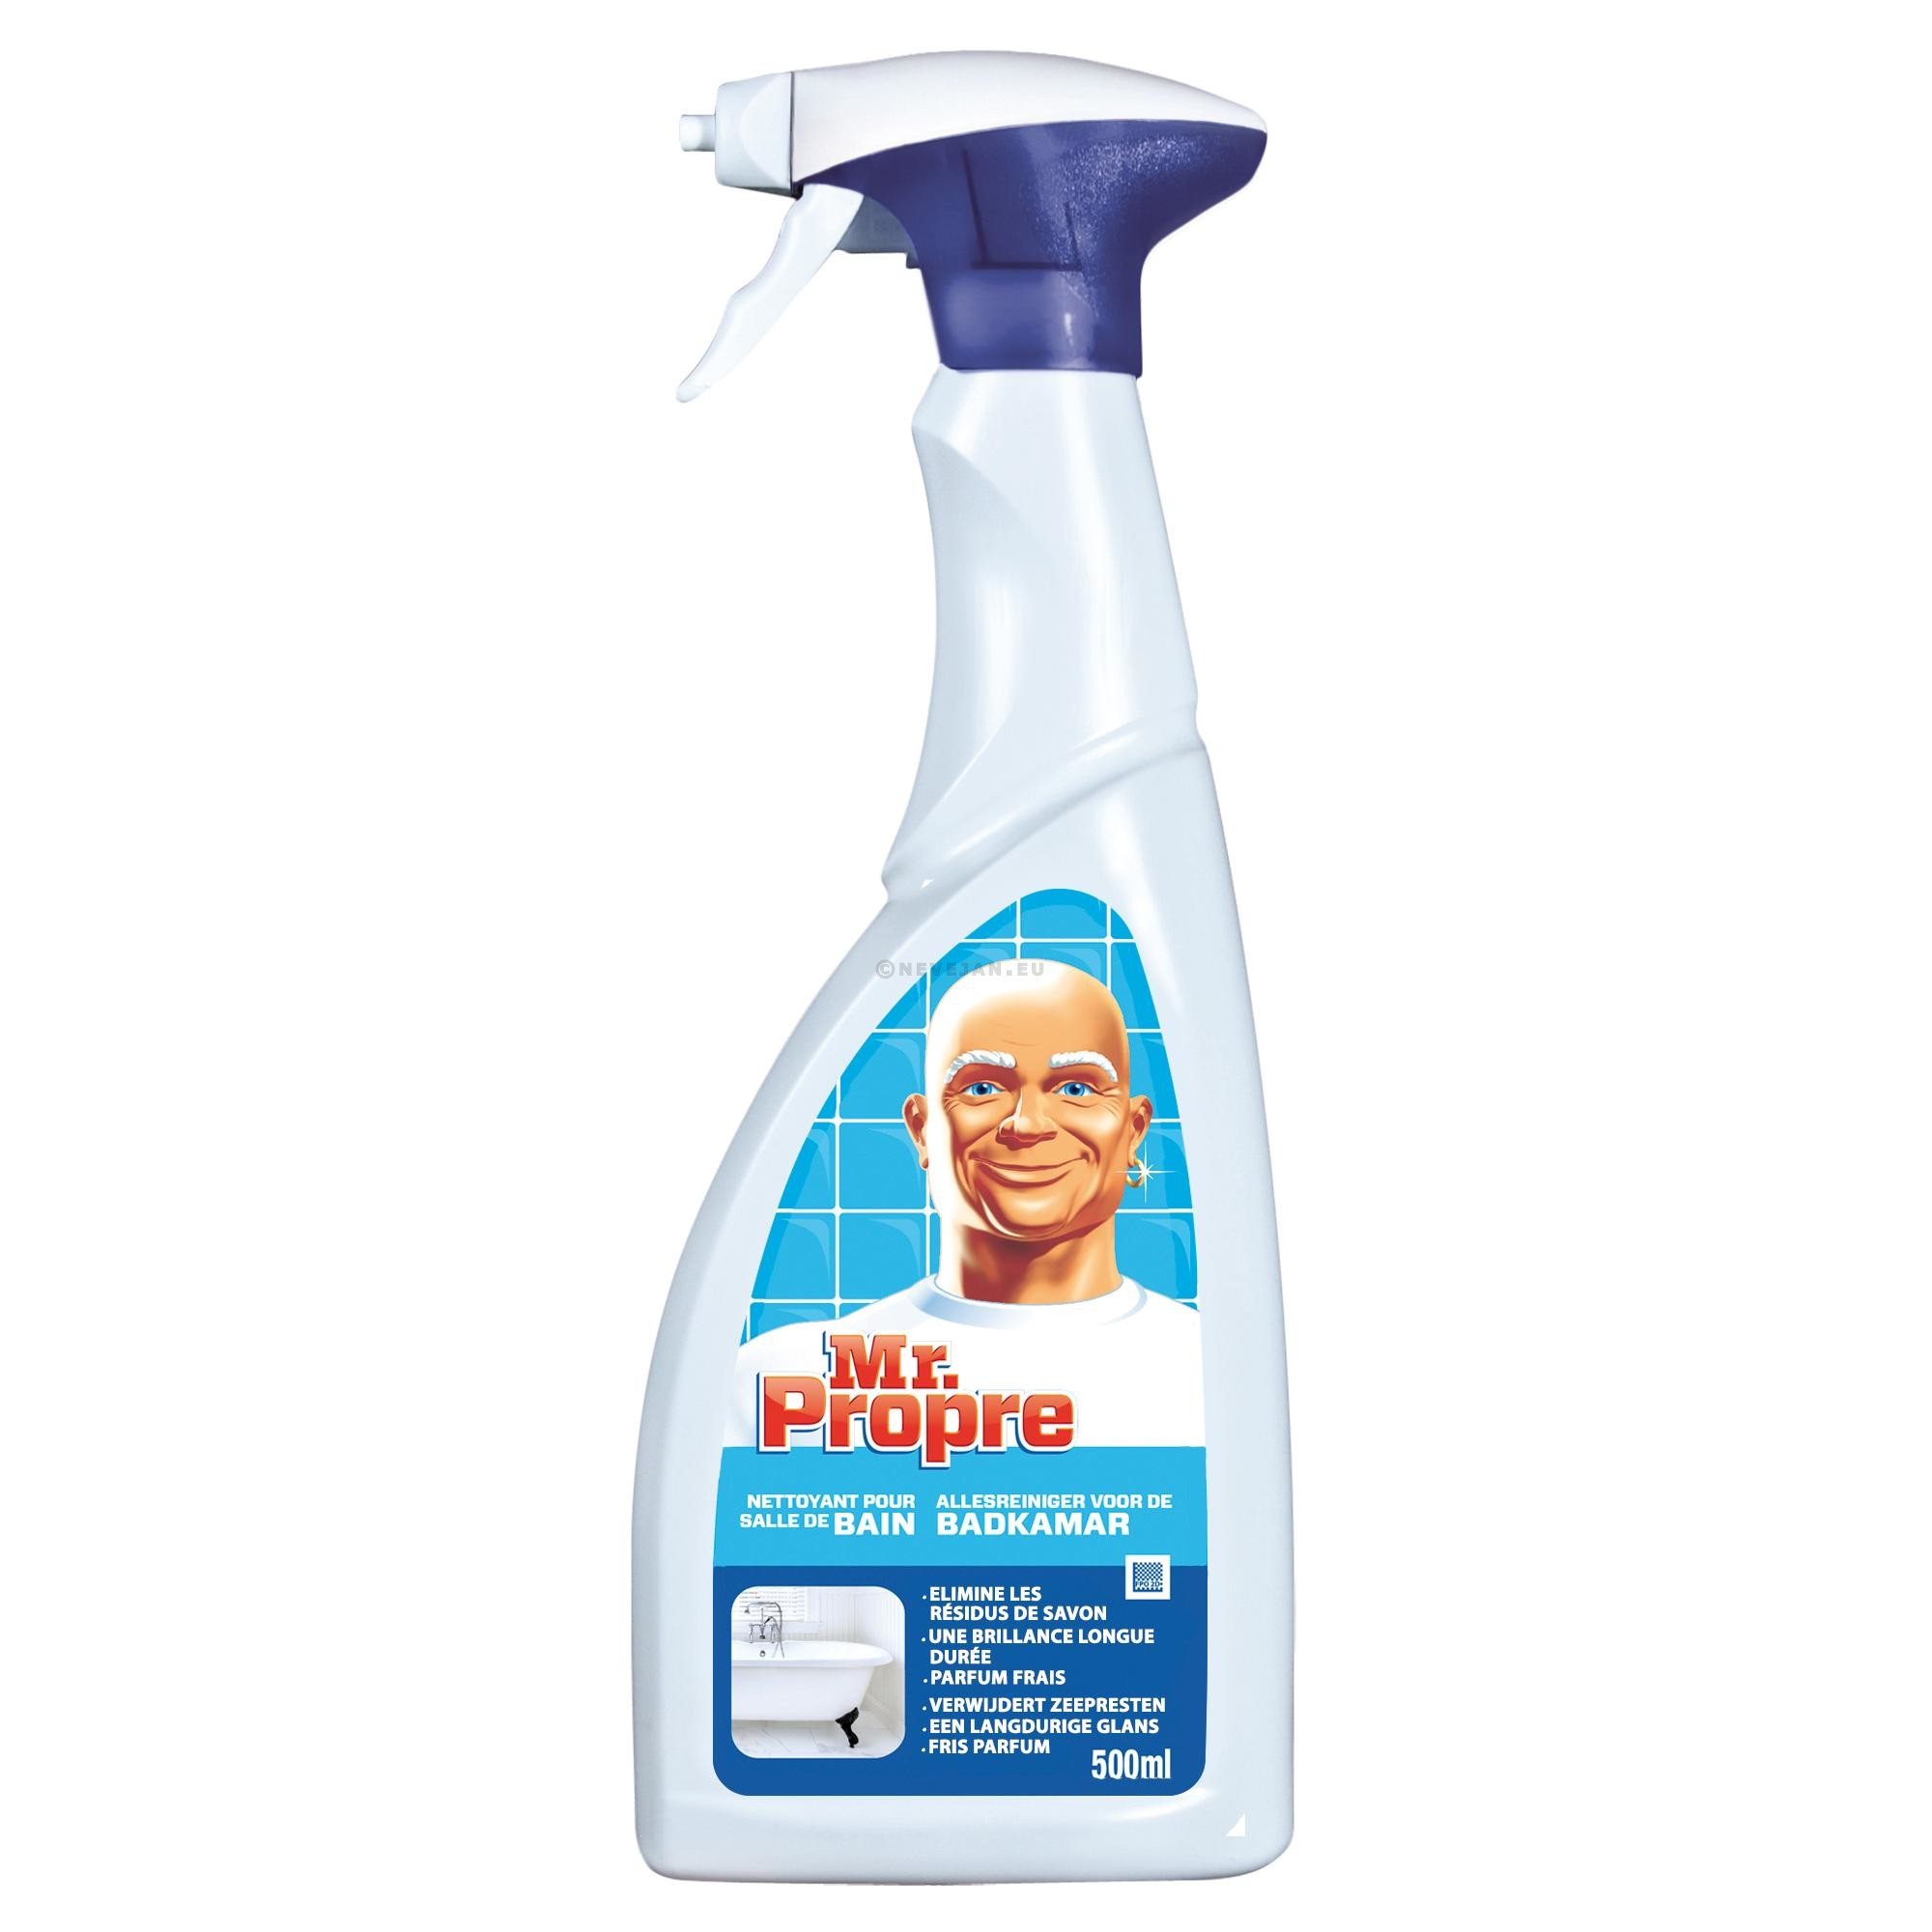 Mr.Proper Badkamer 500ml sanitair spray P&G Professional